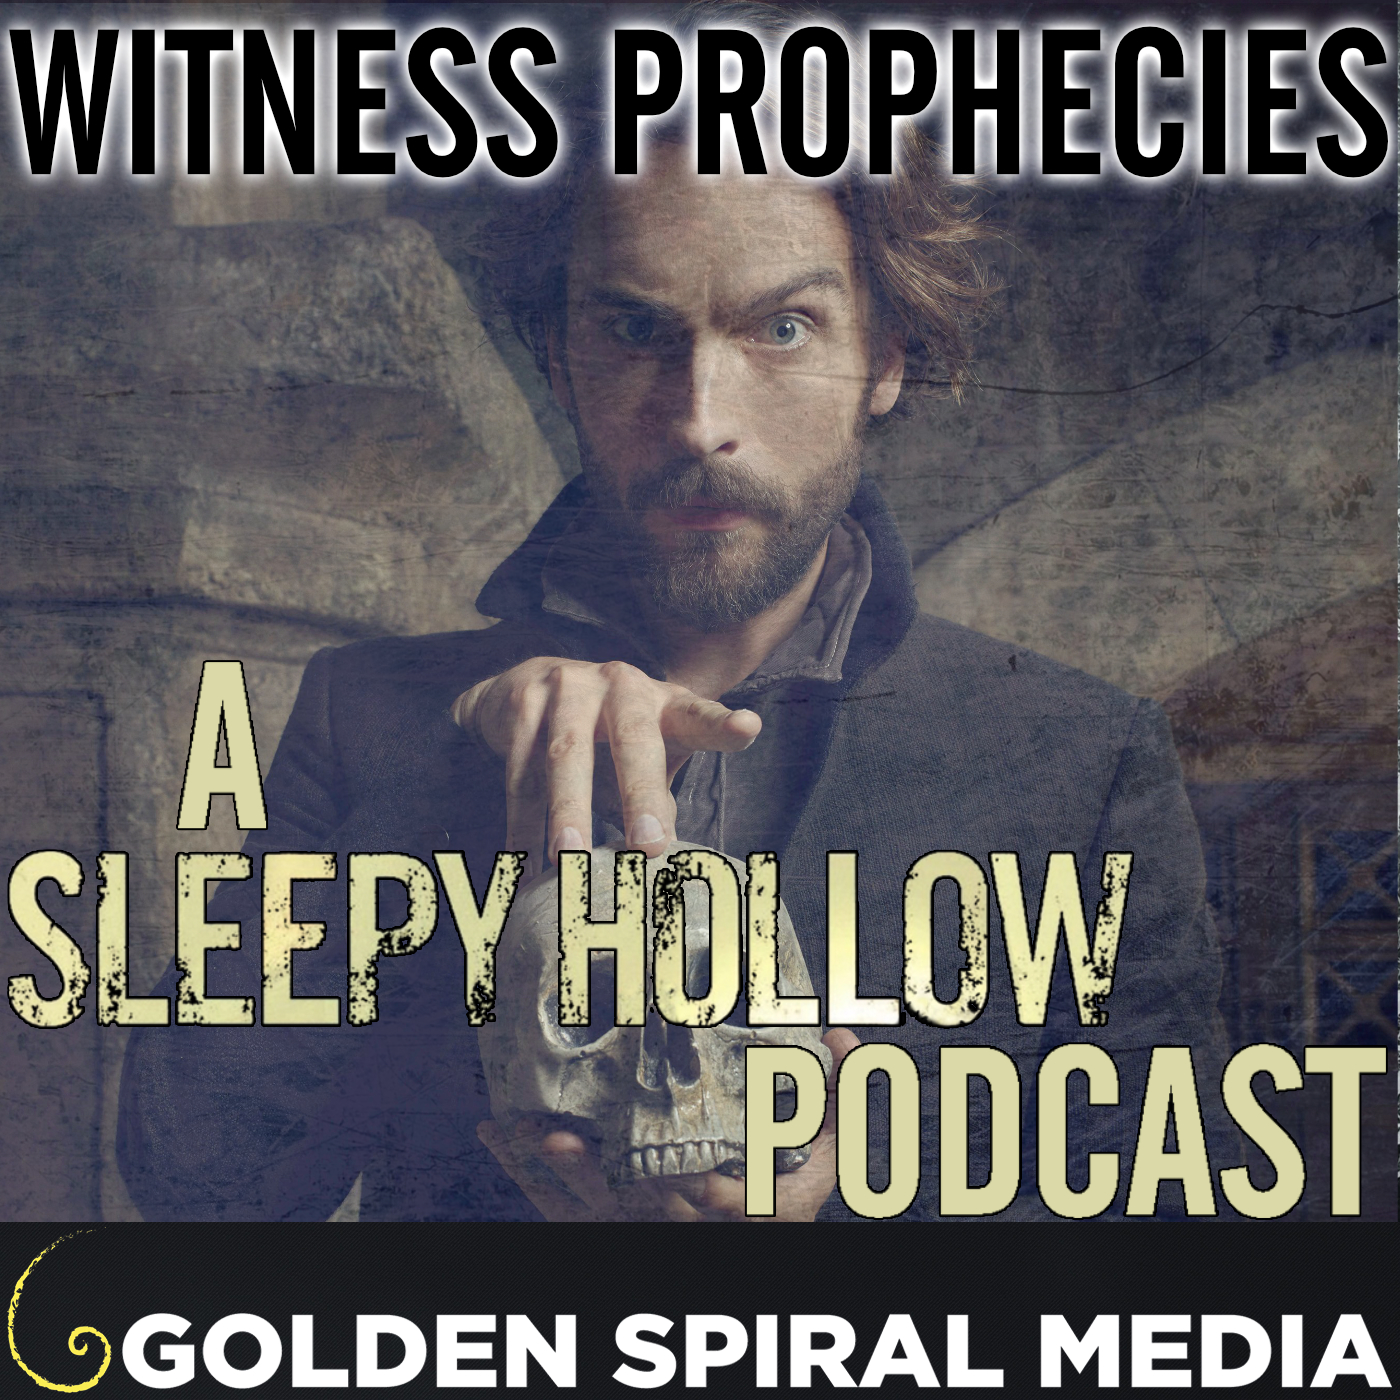 Witness Prophecies: A Sleepy Hollow Podcast